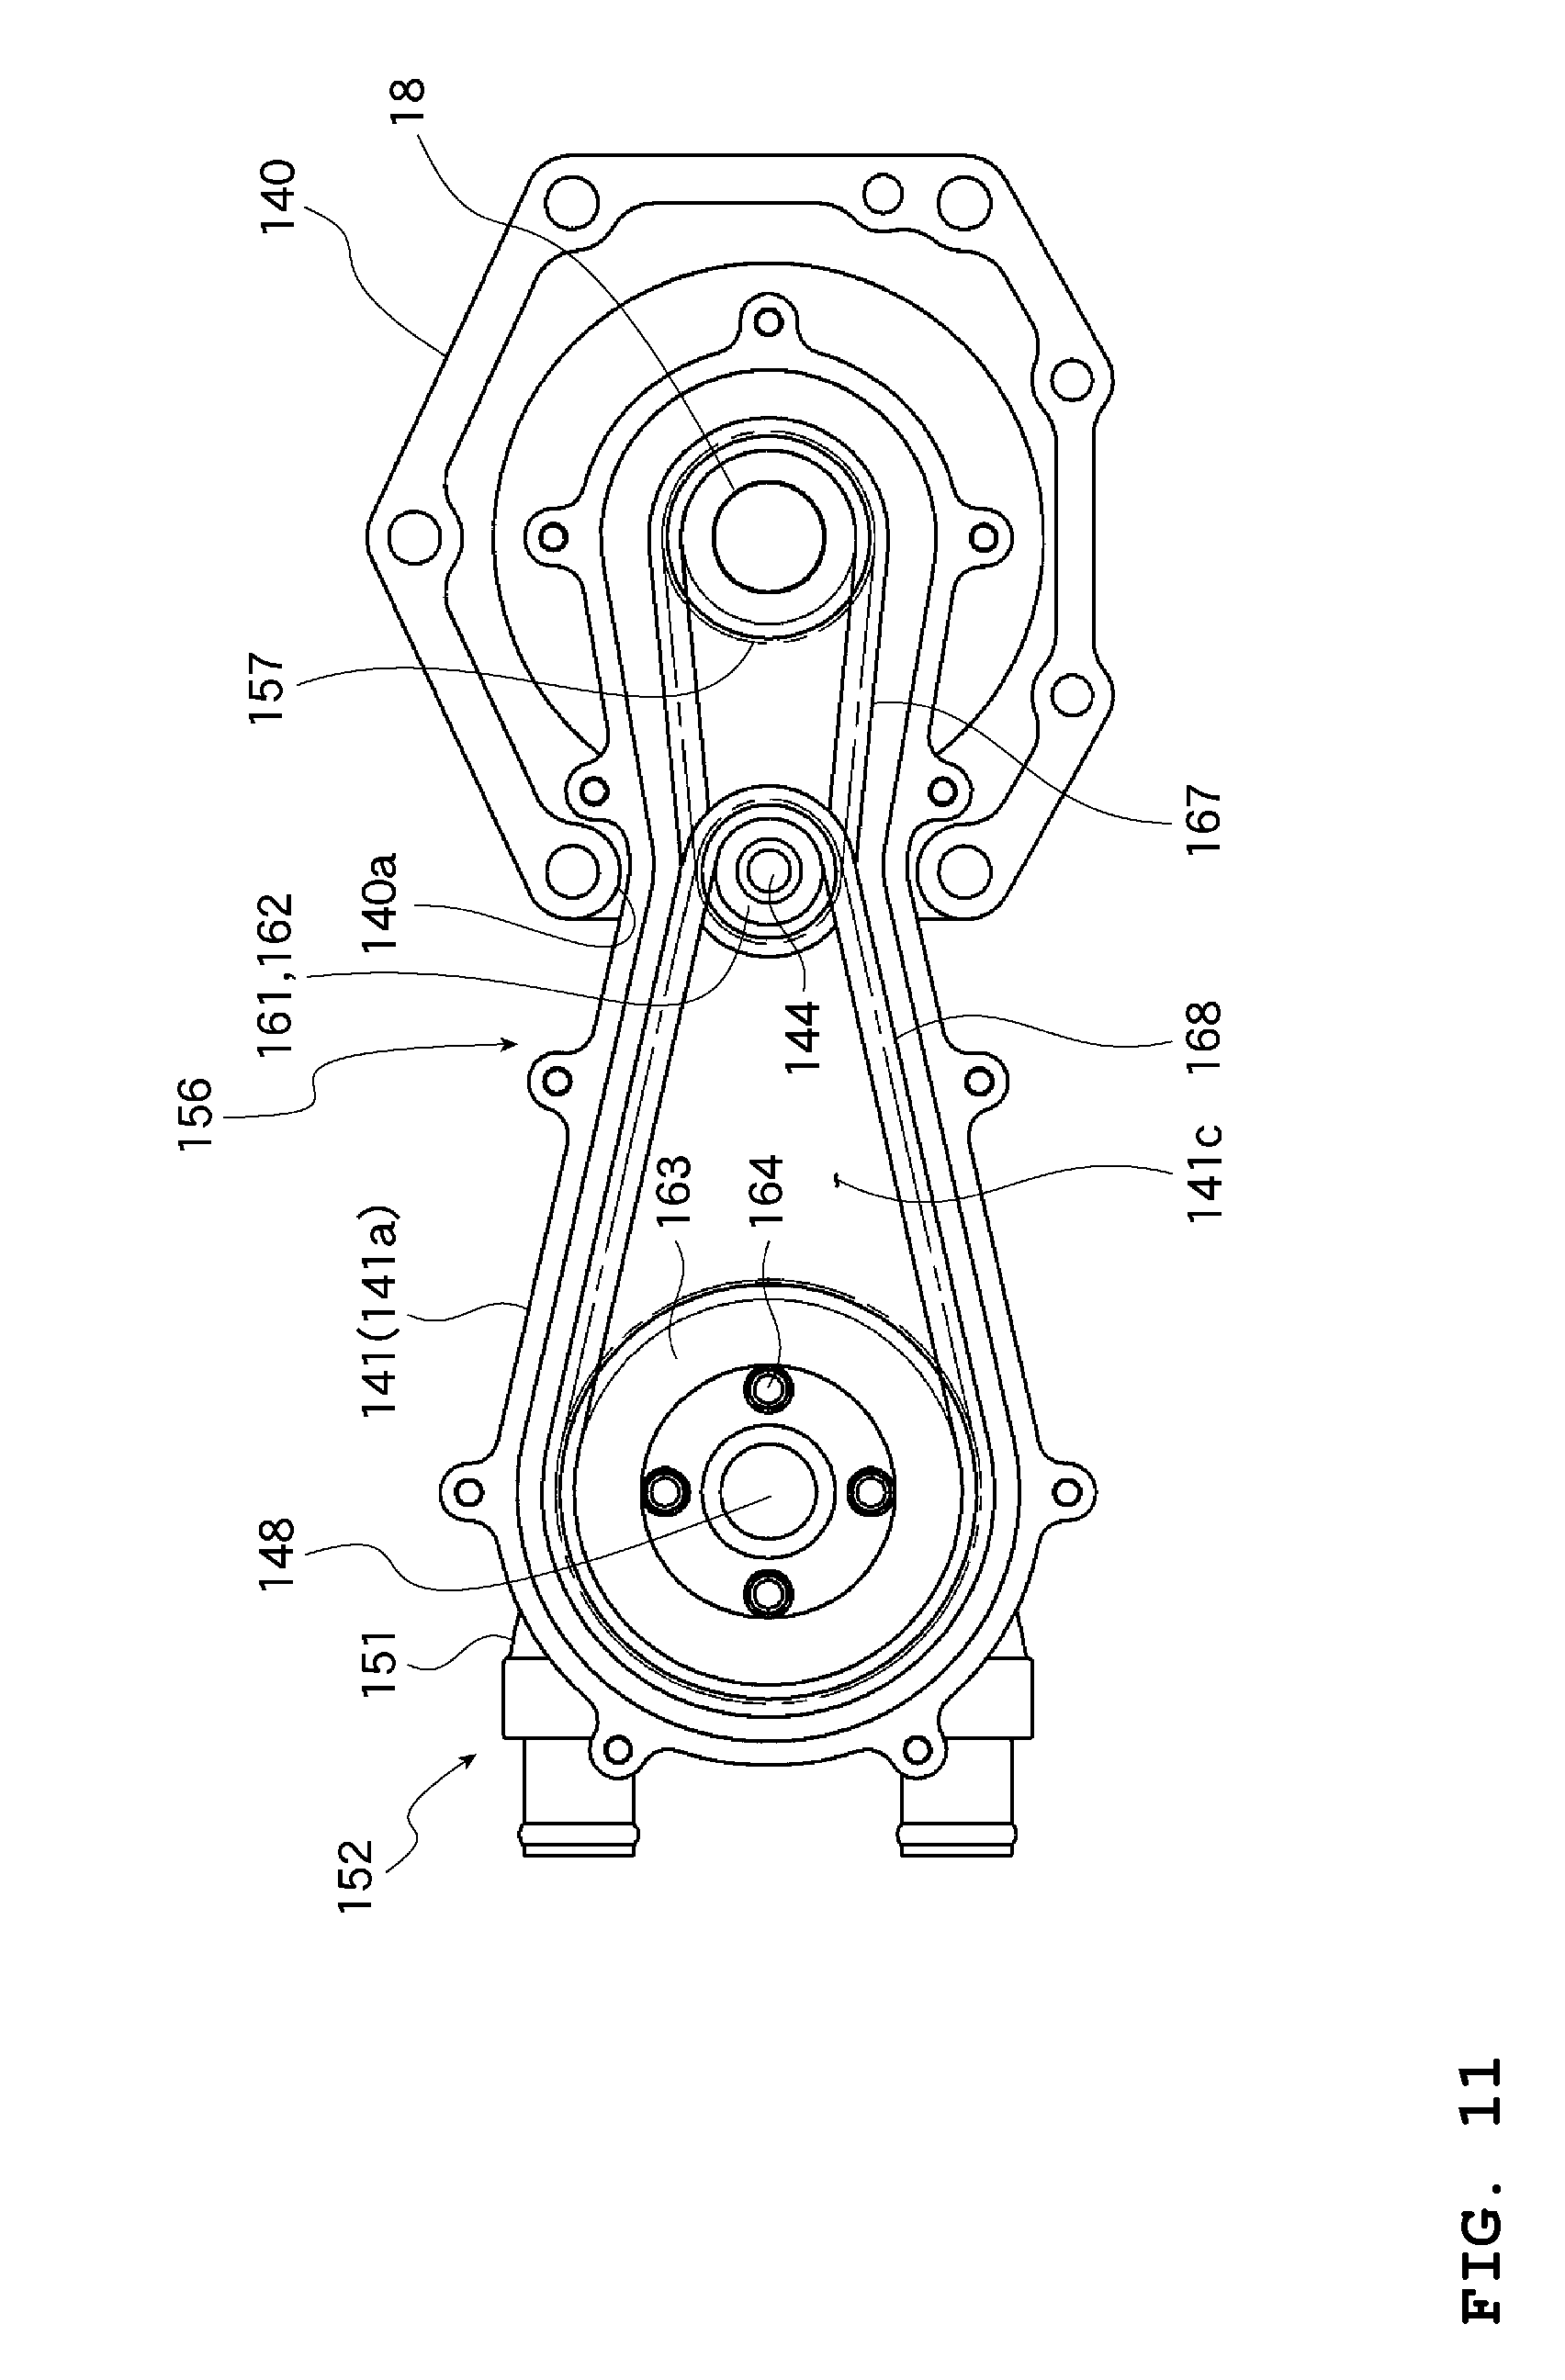 patent us20090163094 outboard motor google patentsMarine Transmission Diagrams As Well As Patent Us8715022 Marine Vessel #17